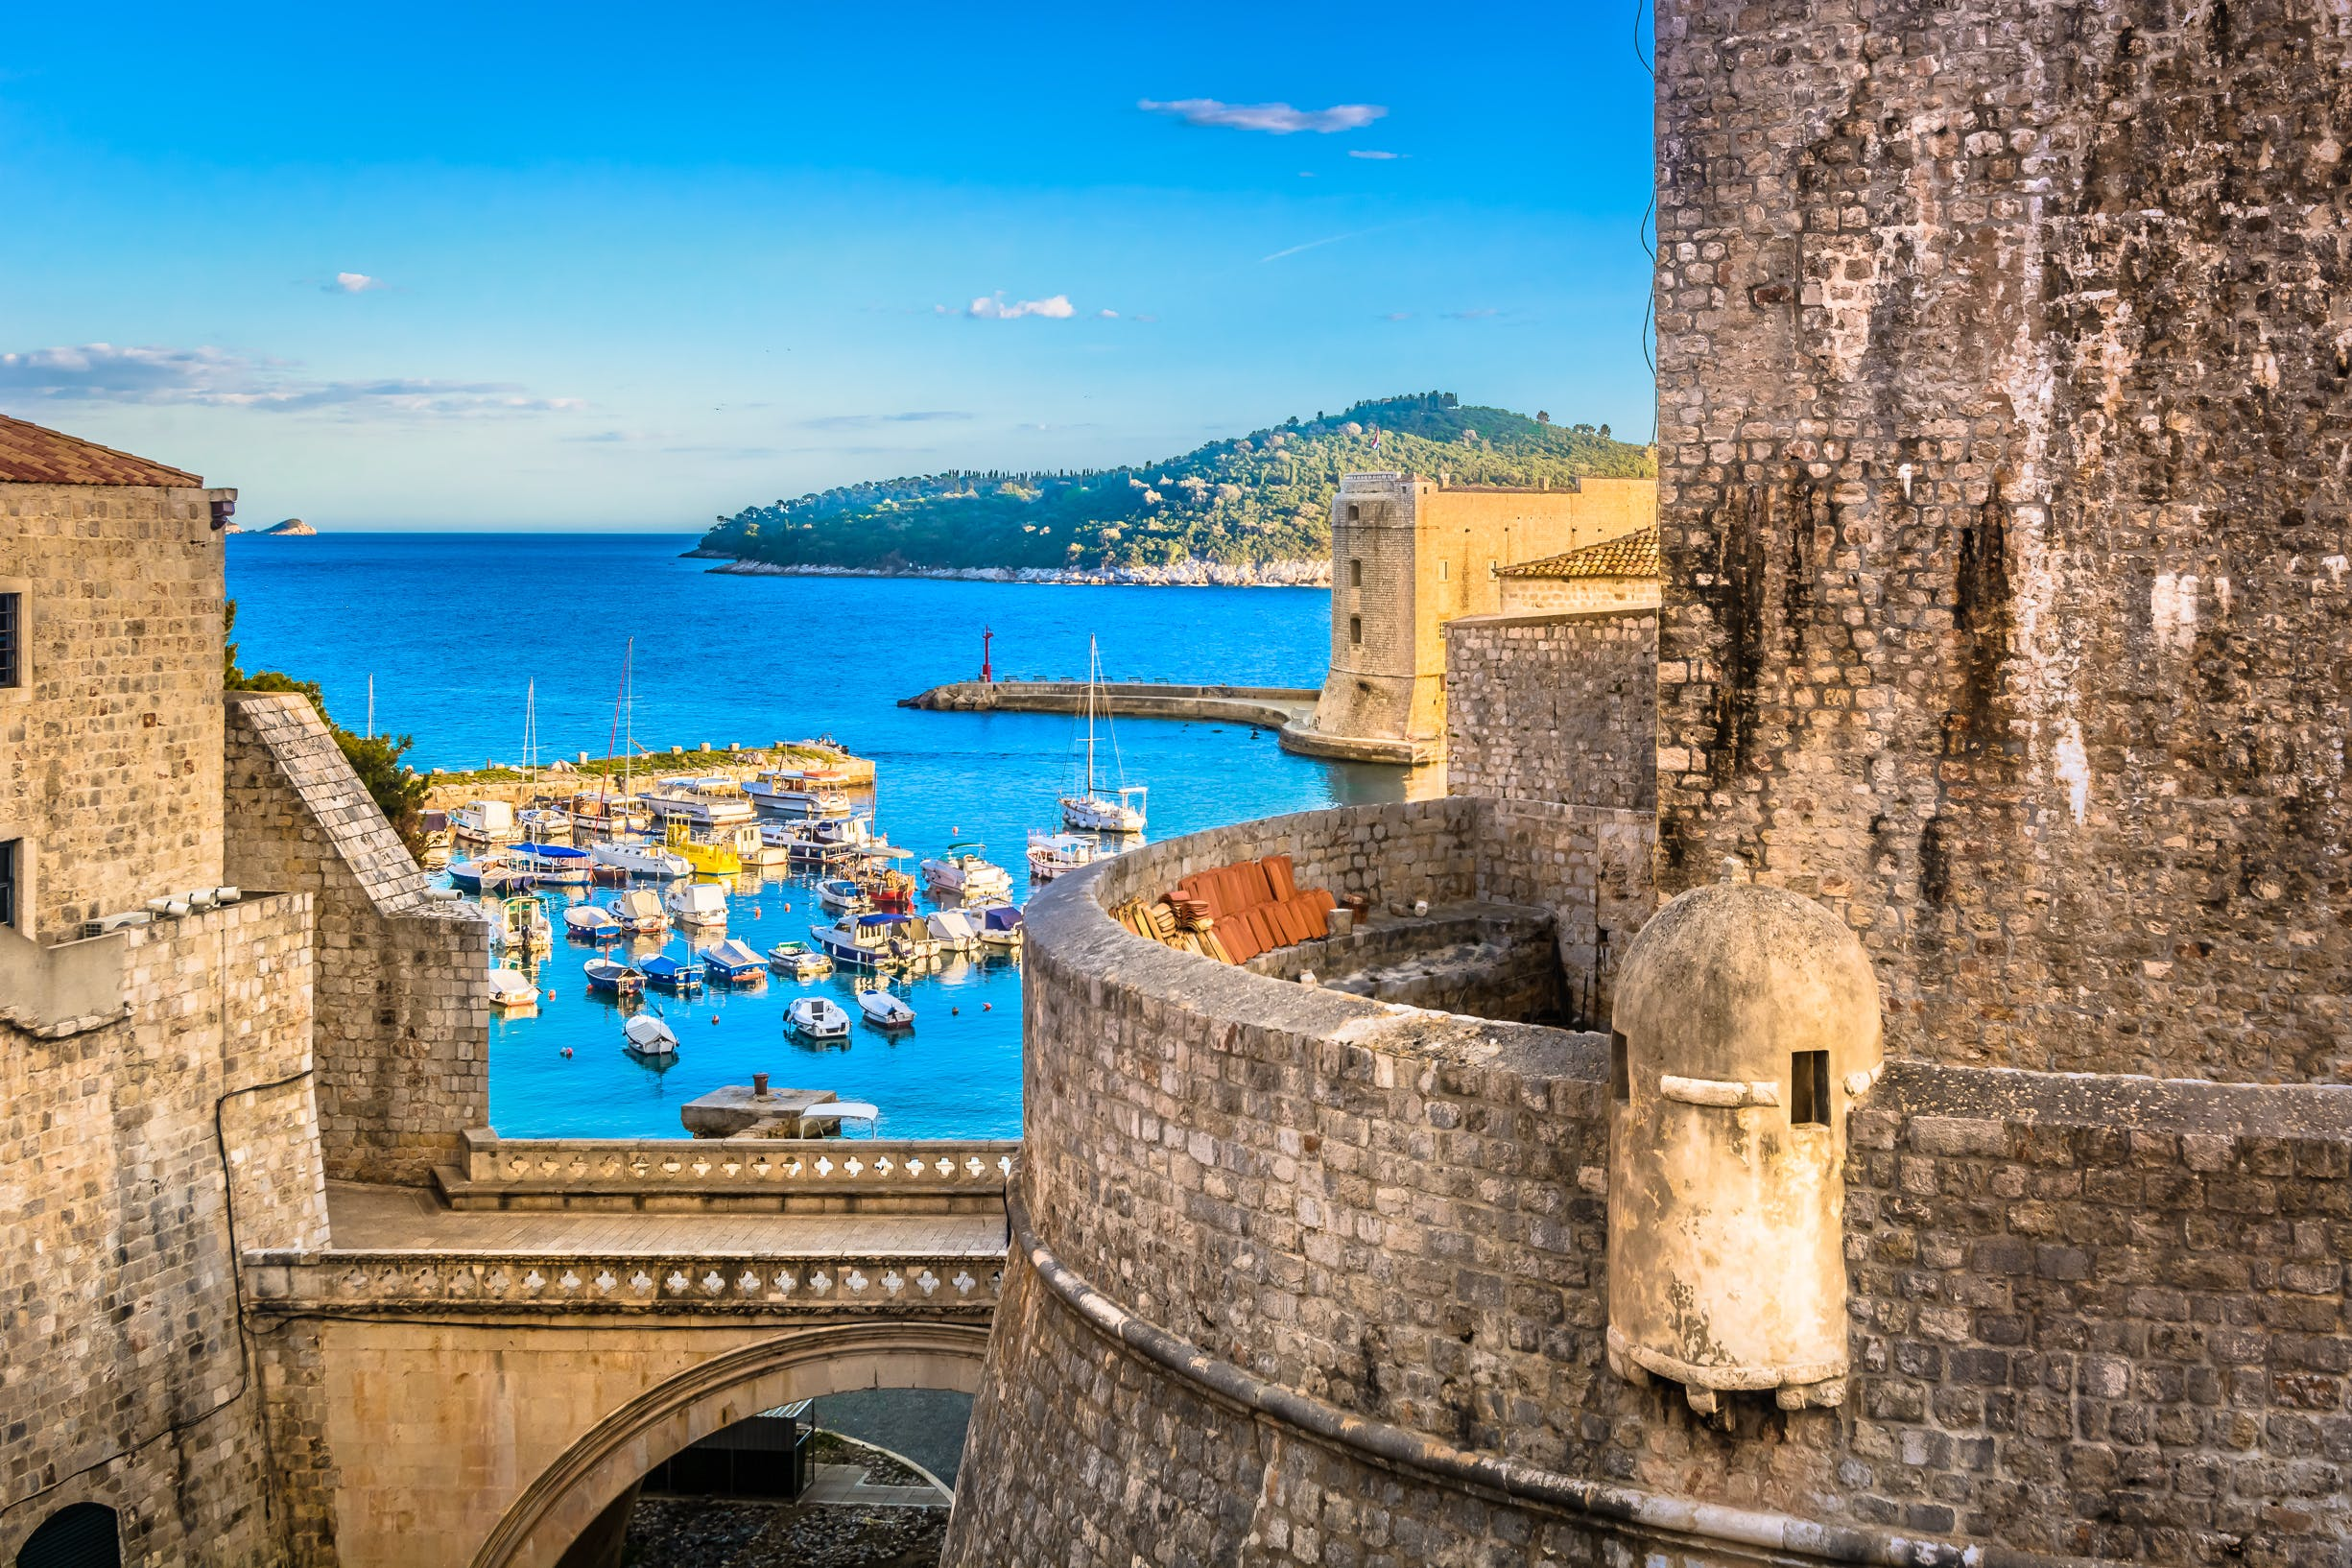 Ancient city walls still protect Old Town in Dubrovnik as they have for centuries.